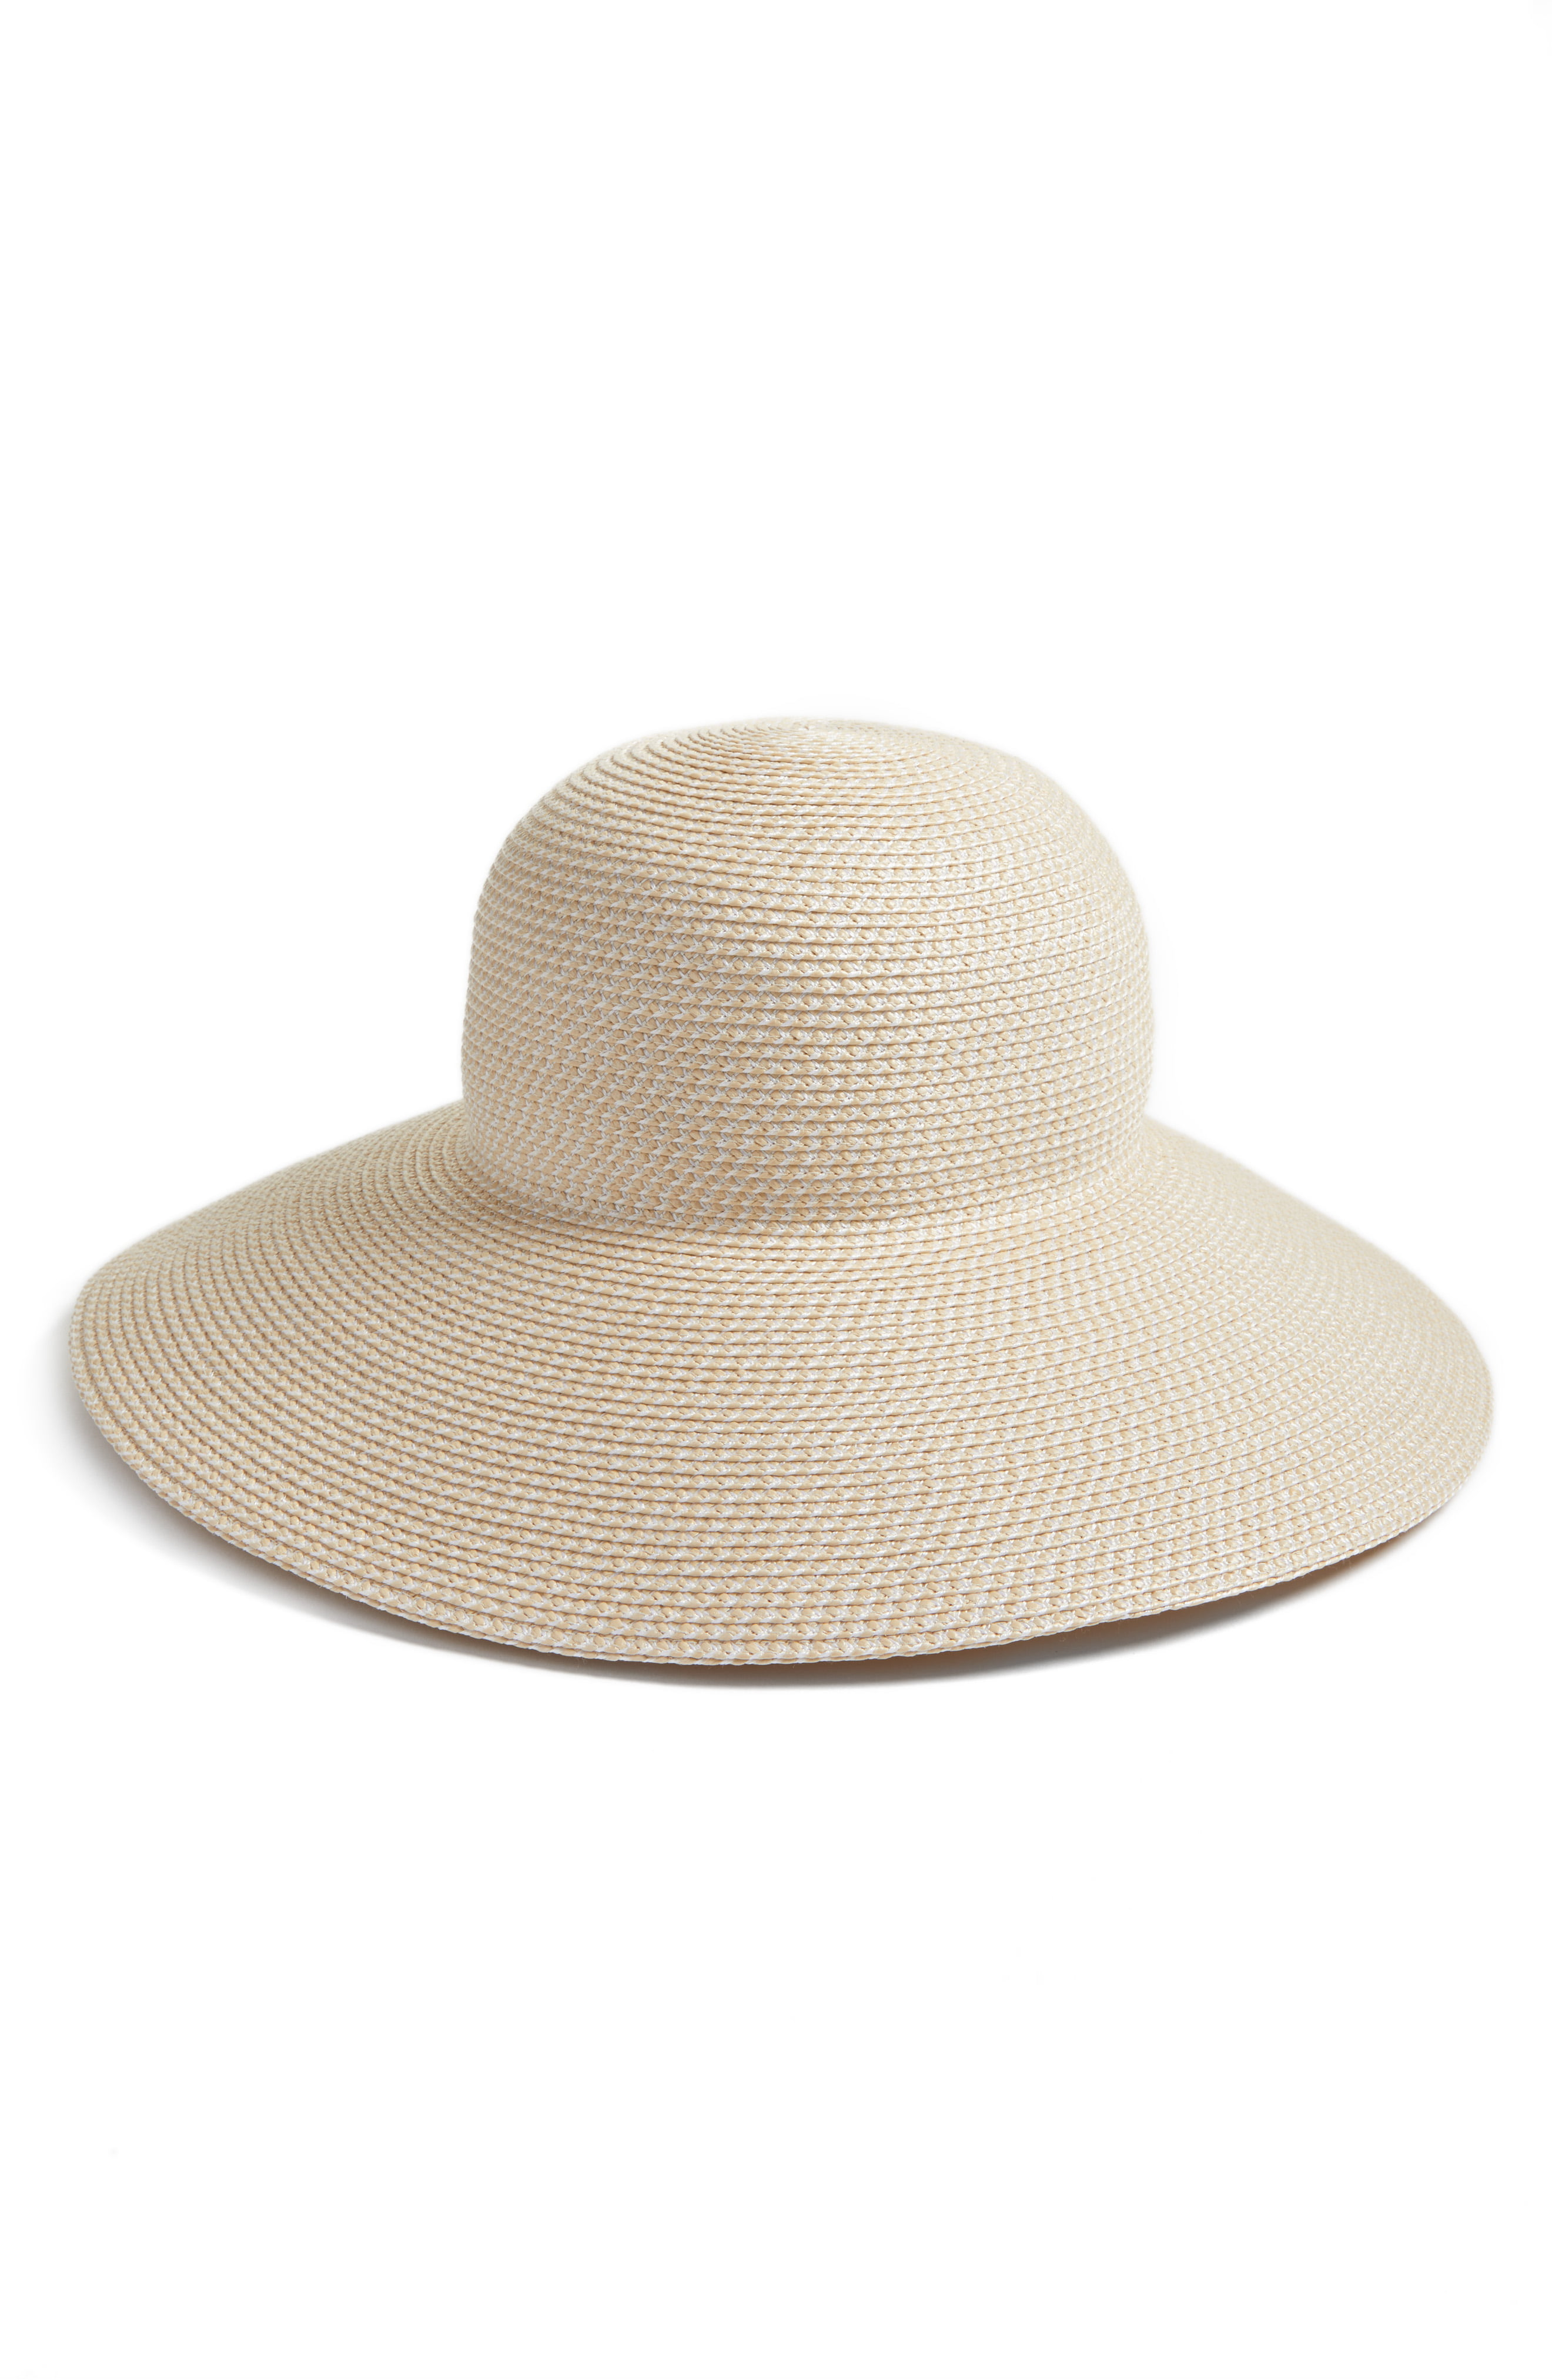 c919ca912d7b7a Eric Javits 'Hampton' Straw Sun Hat in 2019 | Products | Hats, Sun ...